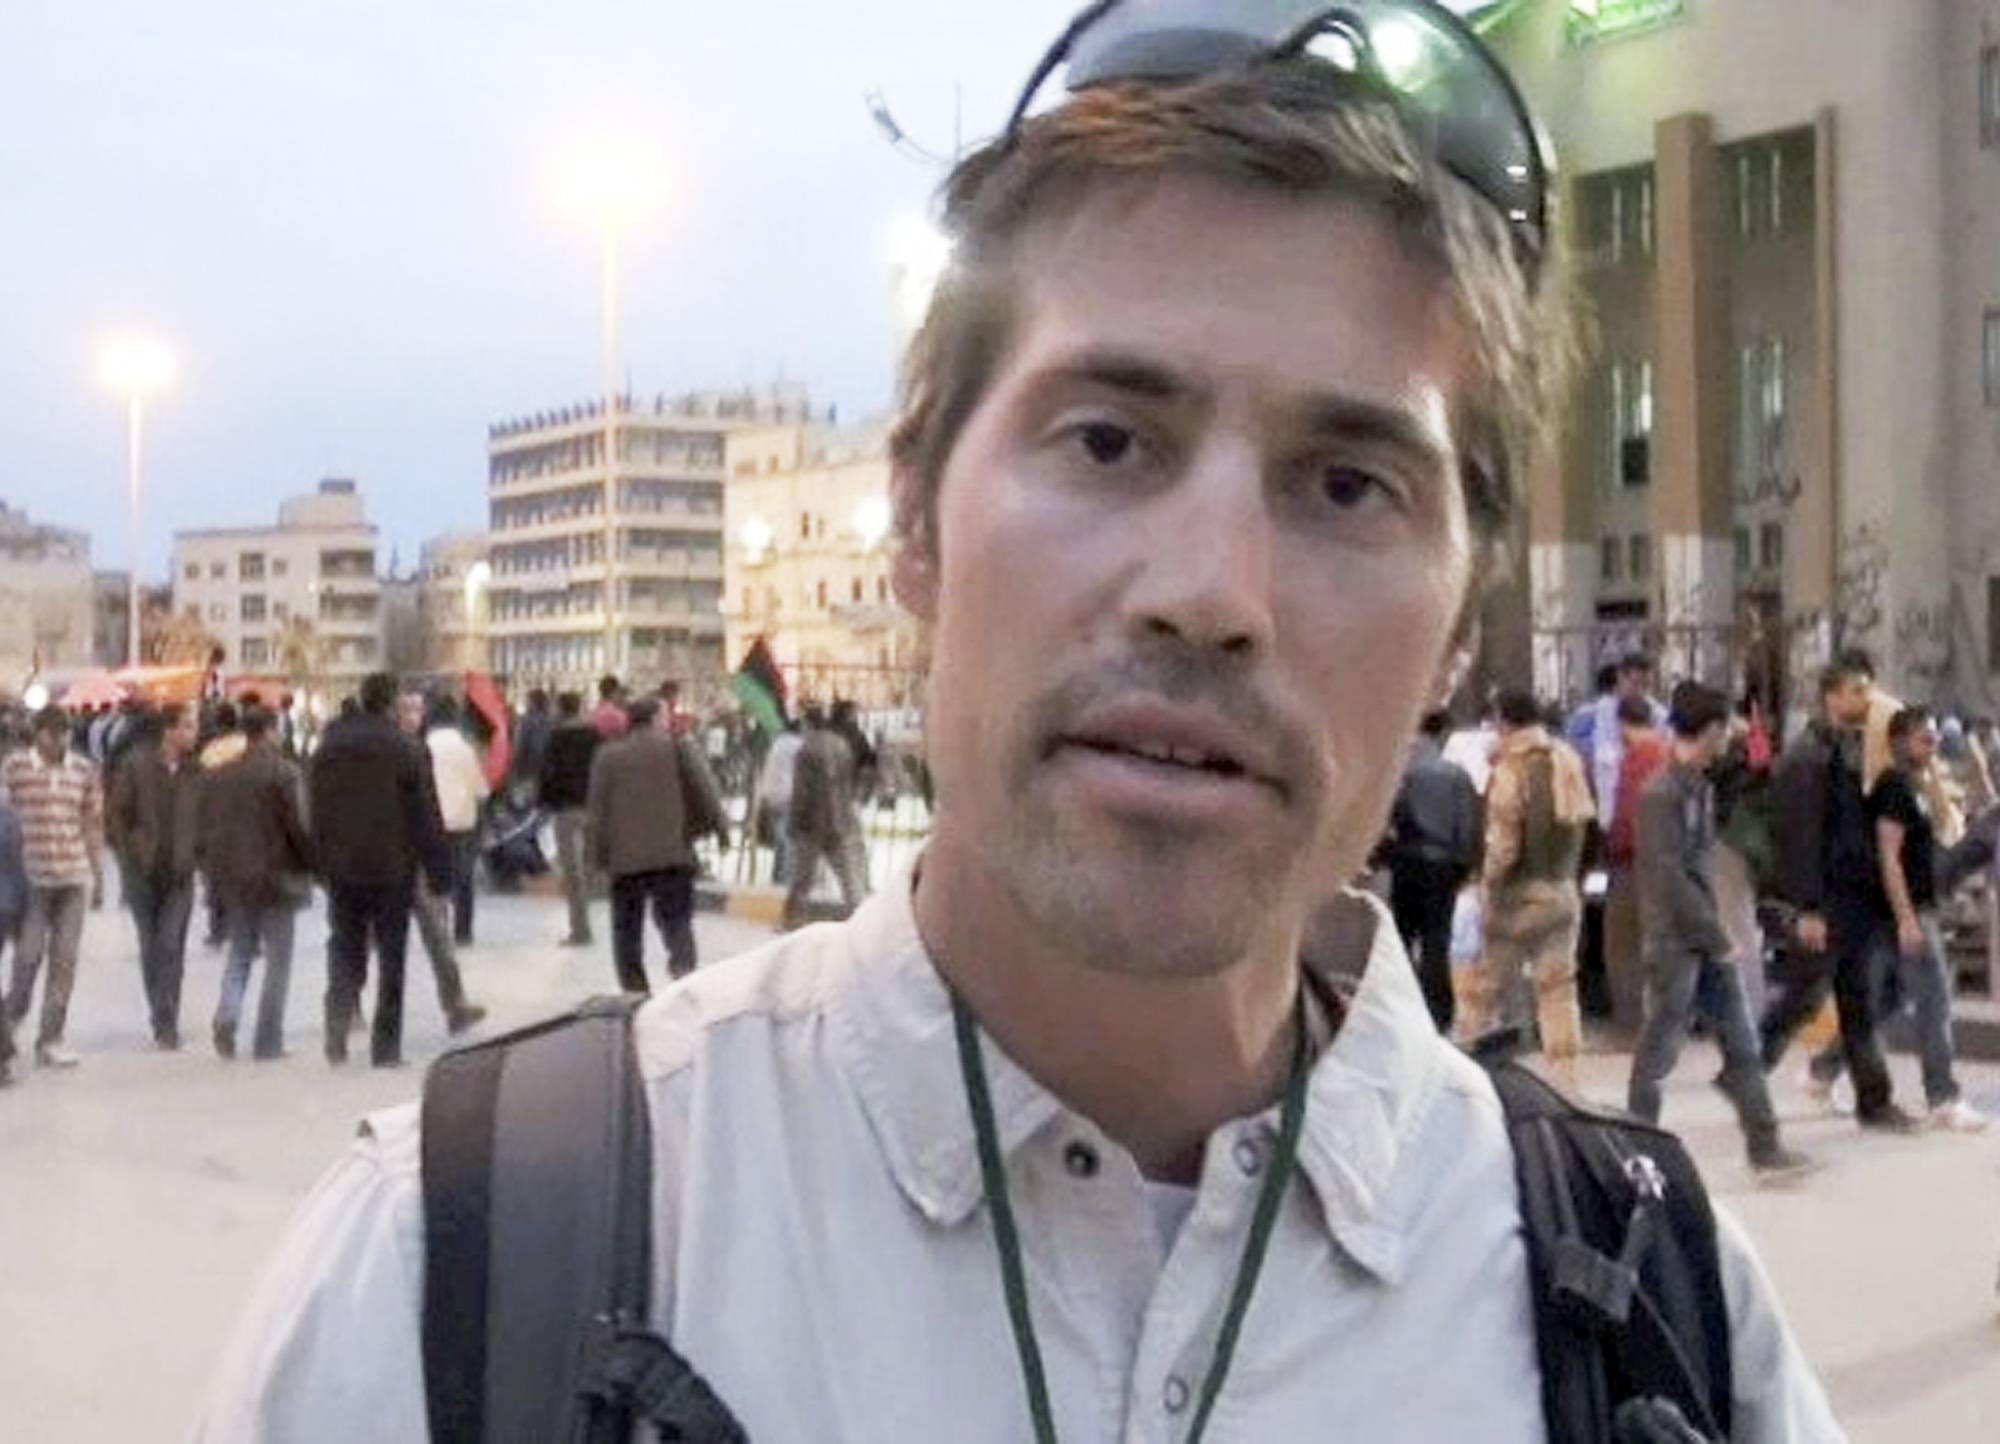 James Foley, a journalist from Rochester, New Hampshire, was killed by the Islamic militant group ISIS. Foley received his master's degree from Northwestern's Medill School of Journalism, Media, Integrated Marketing Communications.